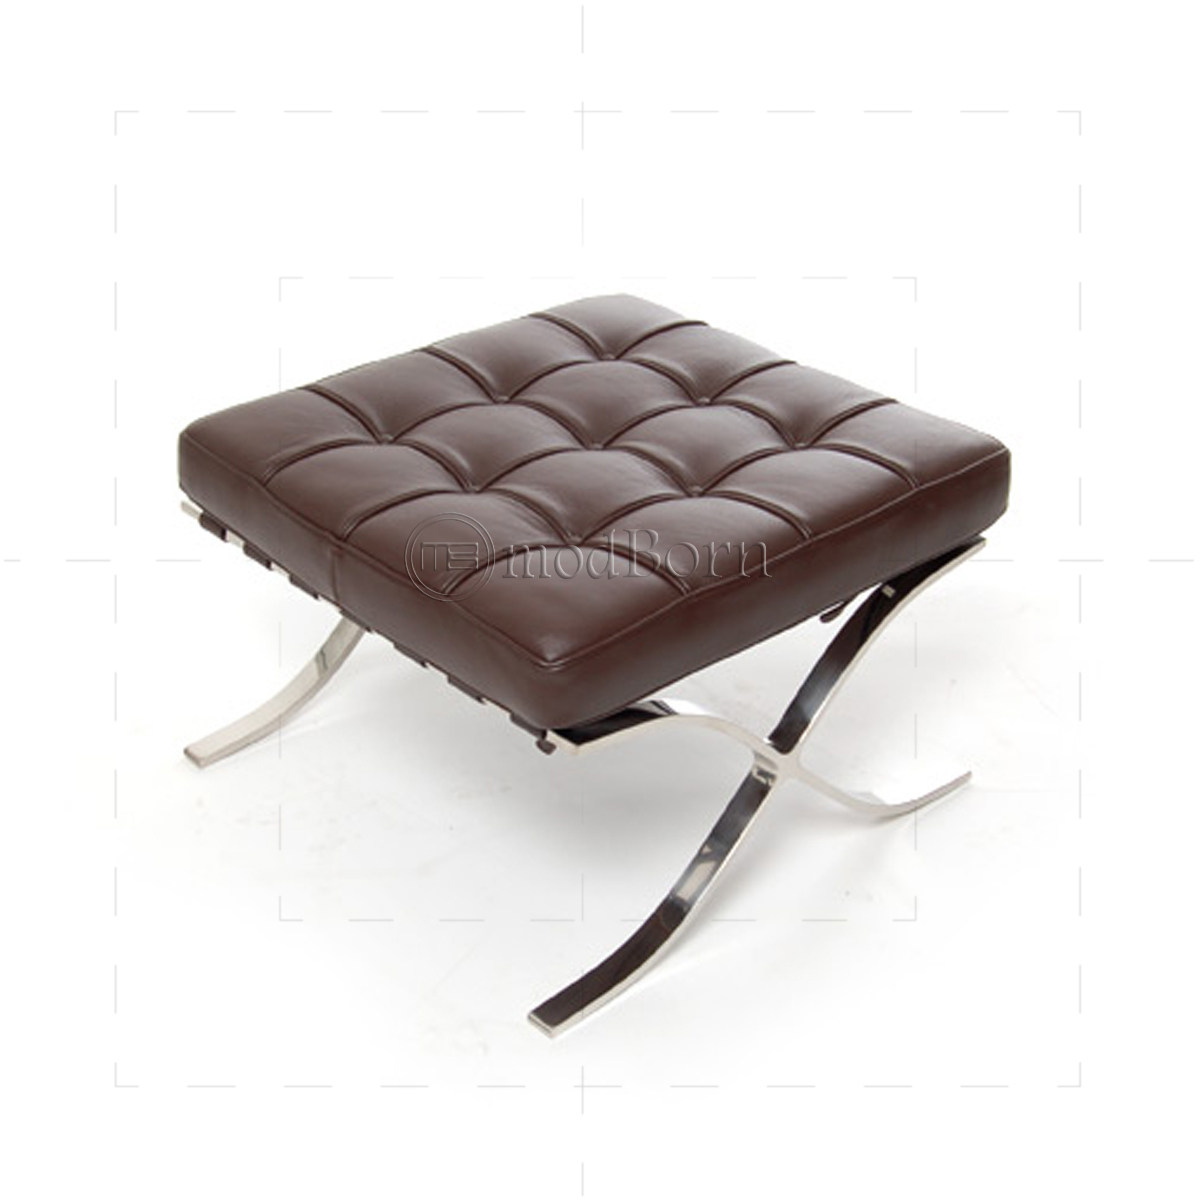 ludwig mies van der rohe barcelona style ottoman brown leather replica